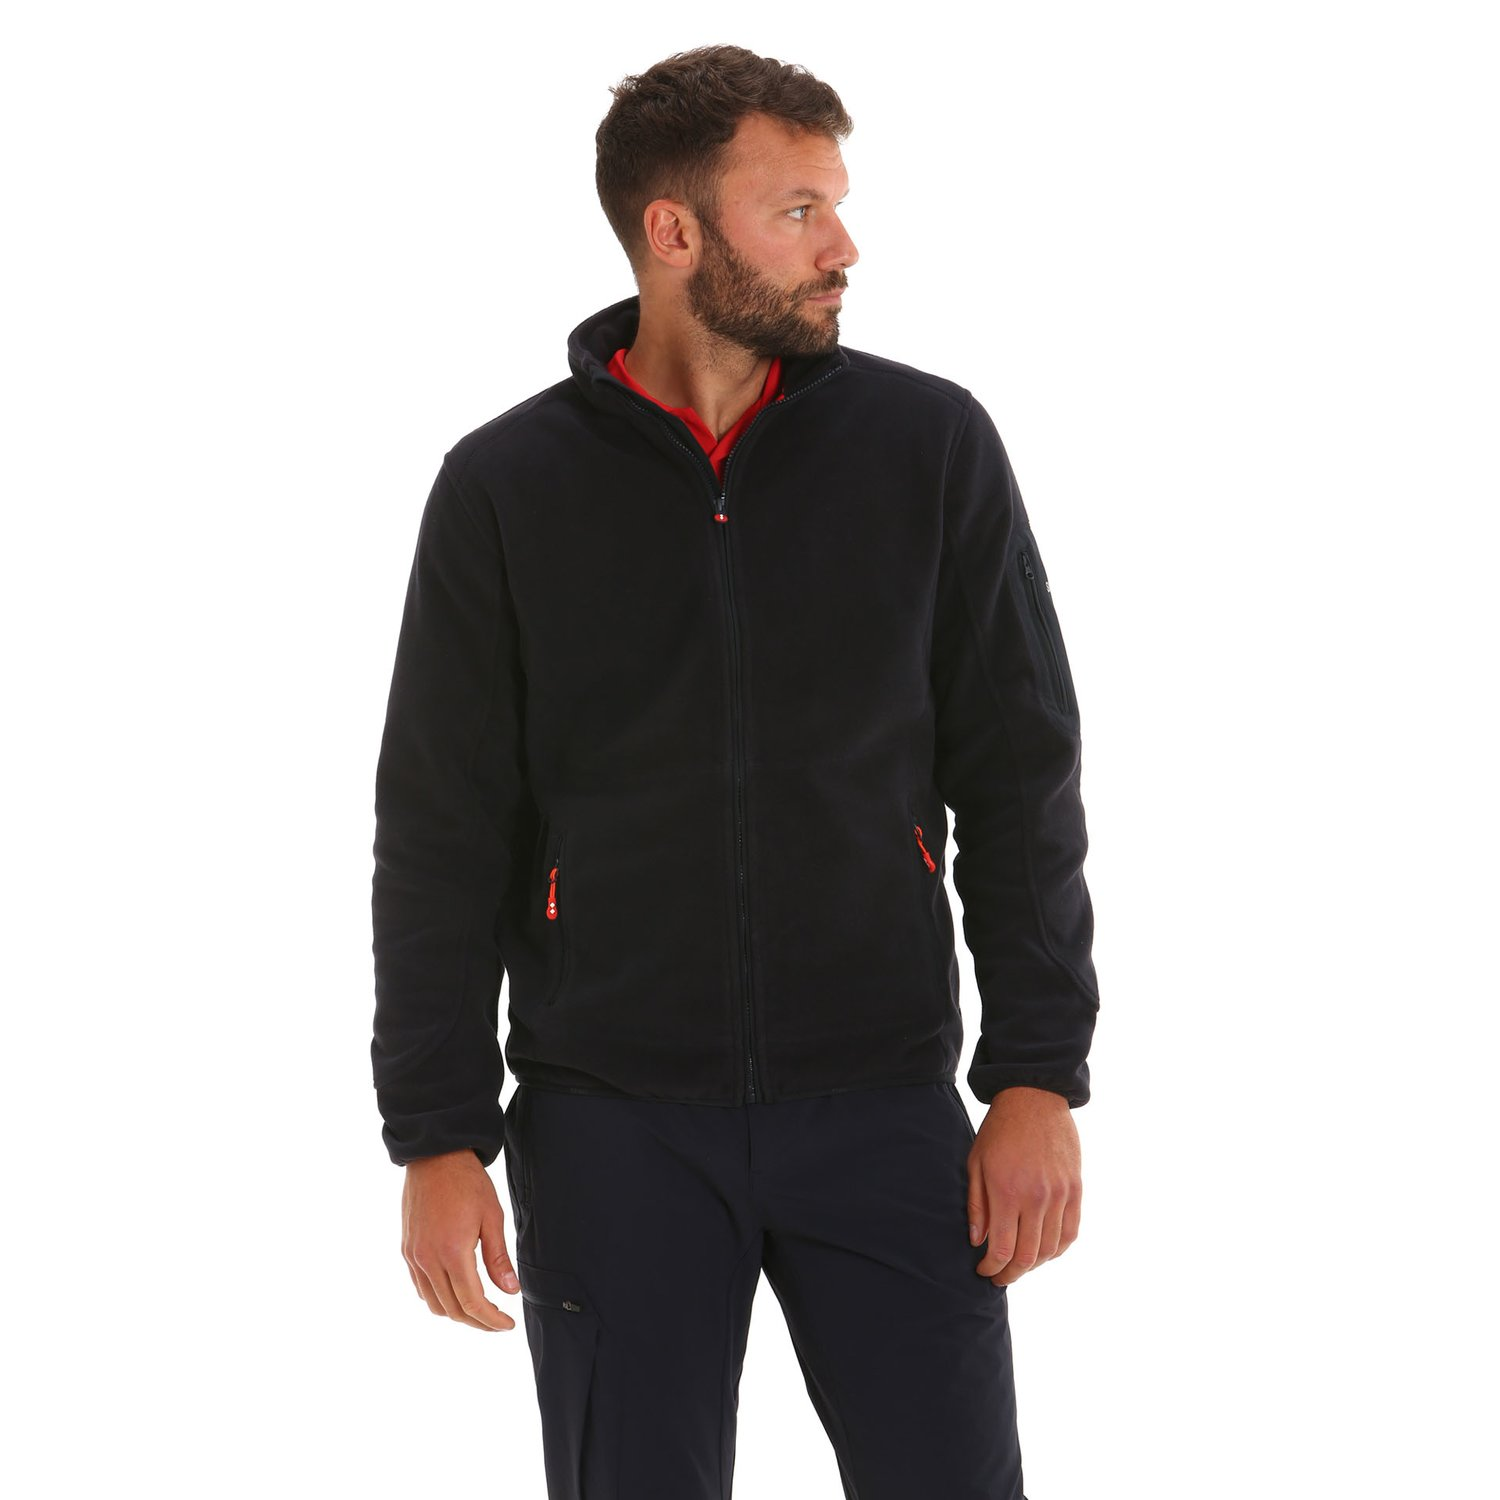 Interlodge Fleece - Navy